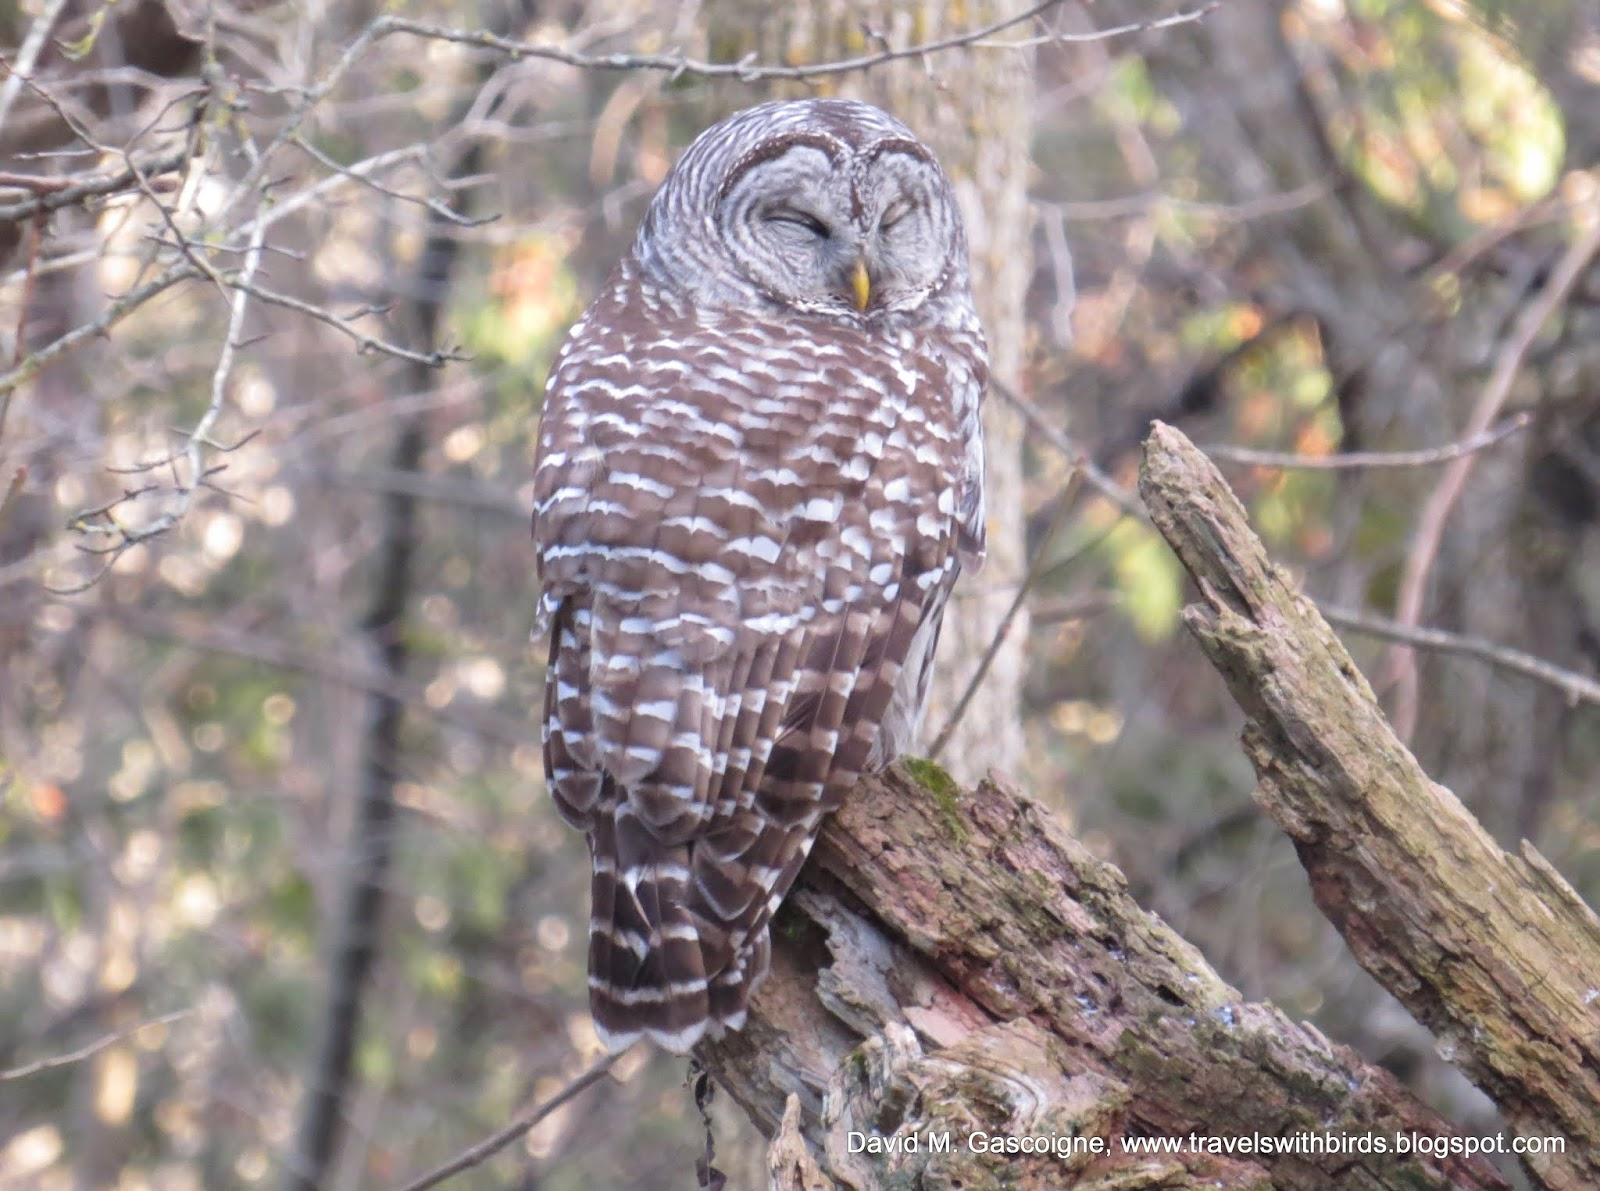 Travels With Birds: Barred Owl (Chouette rayée)